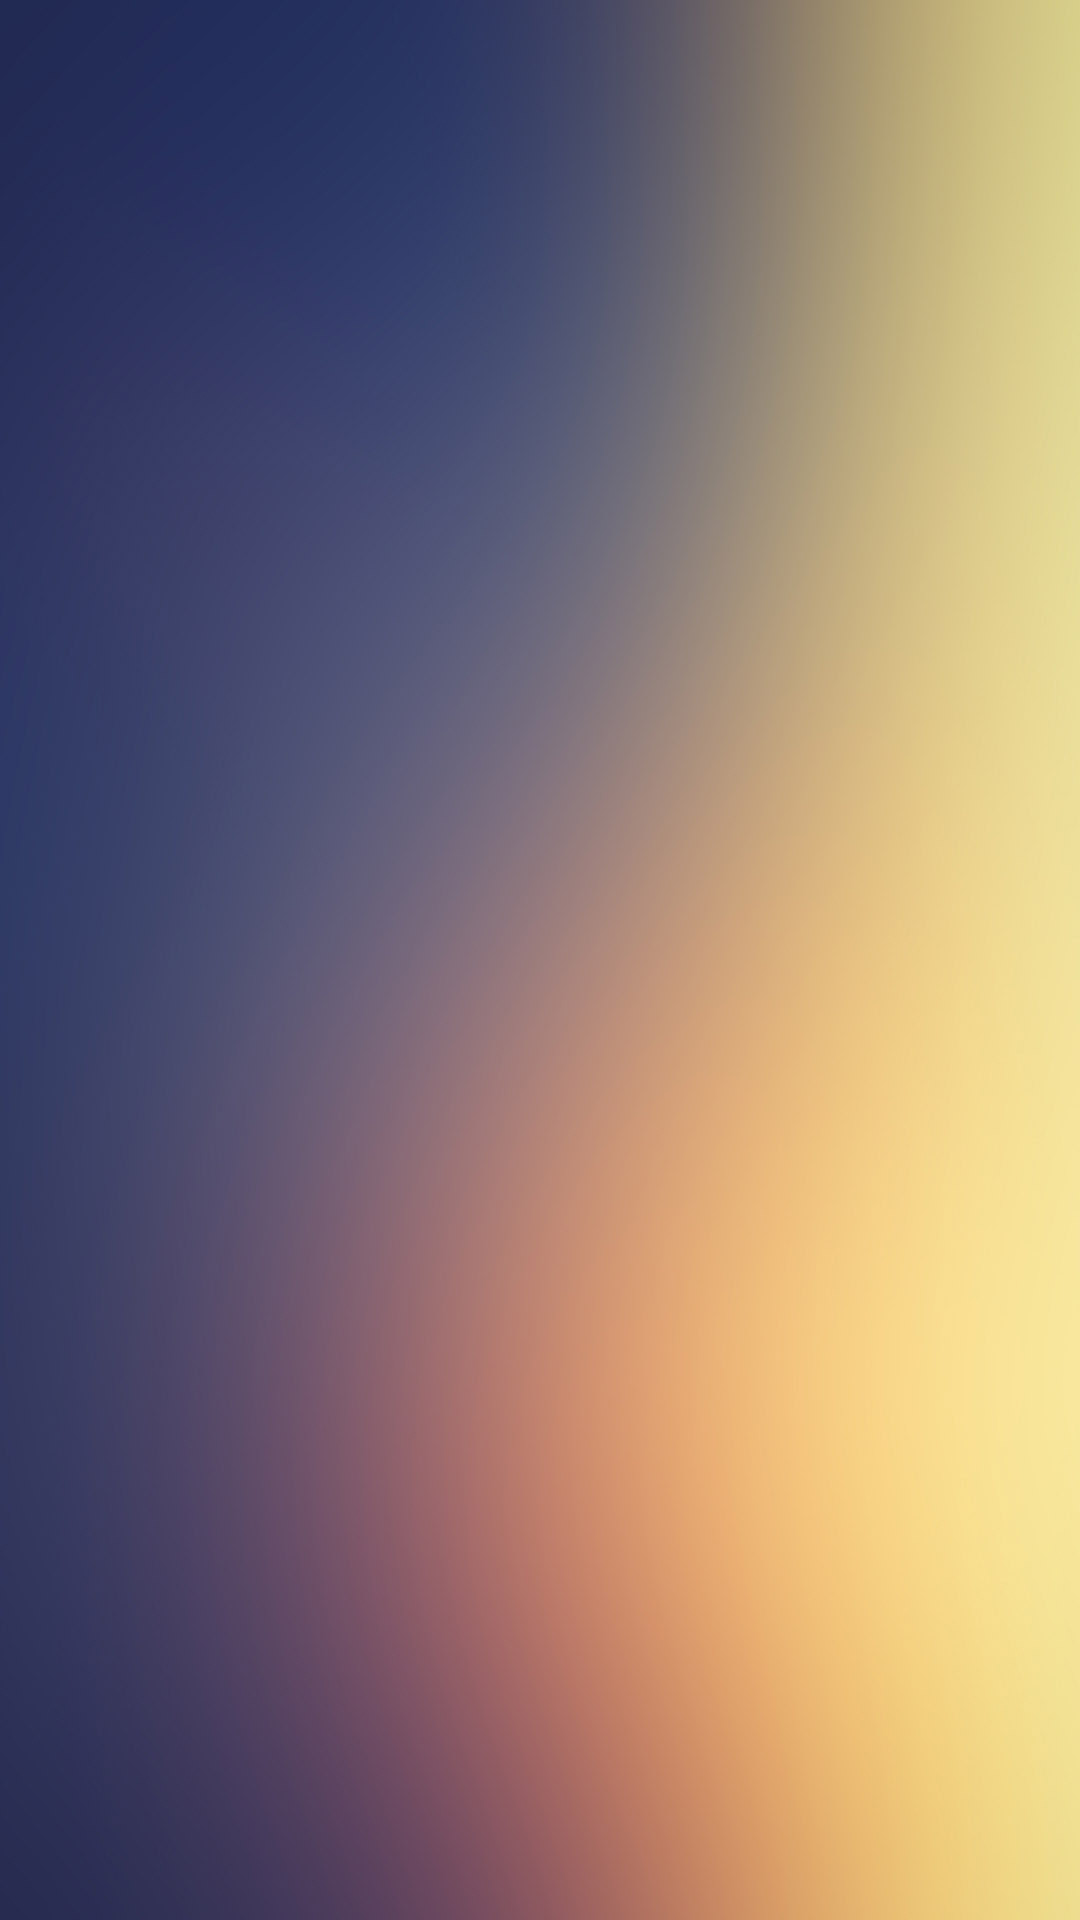 Amazing iPhone 6 Wallpapers and Textured Backgrounds 1080x1920